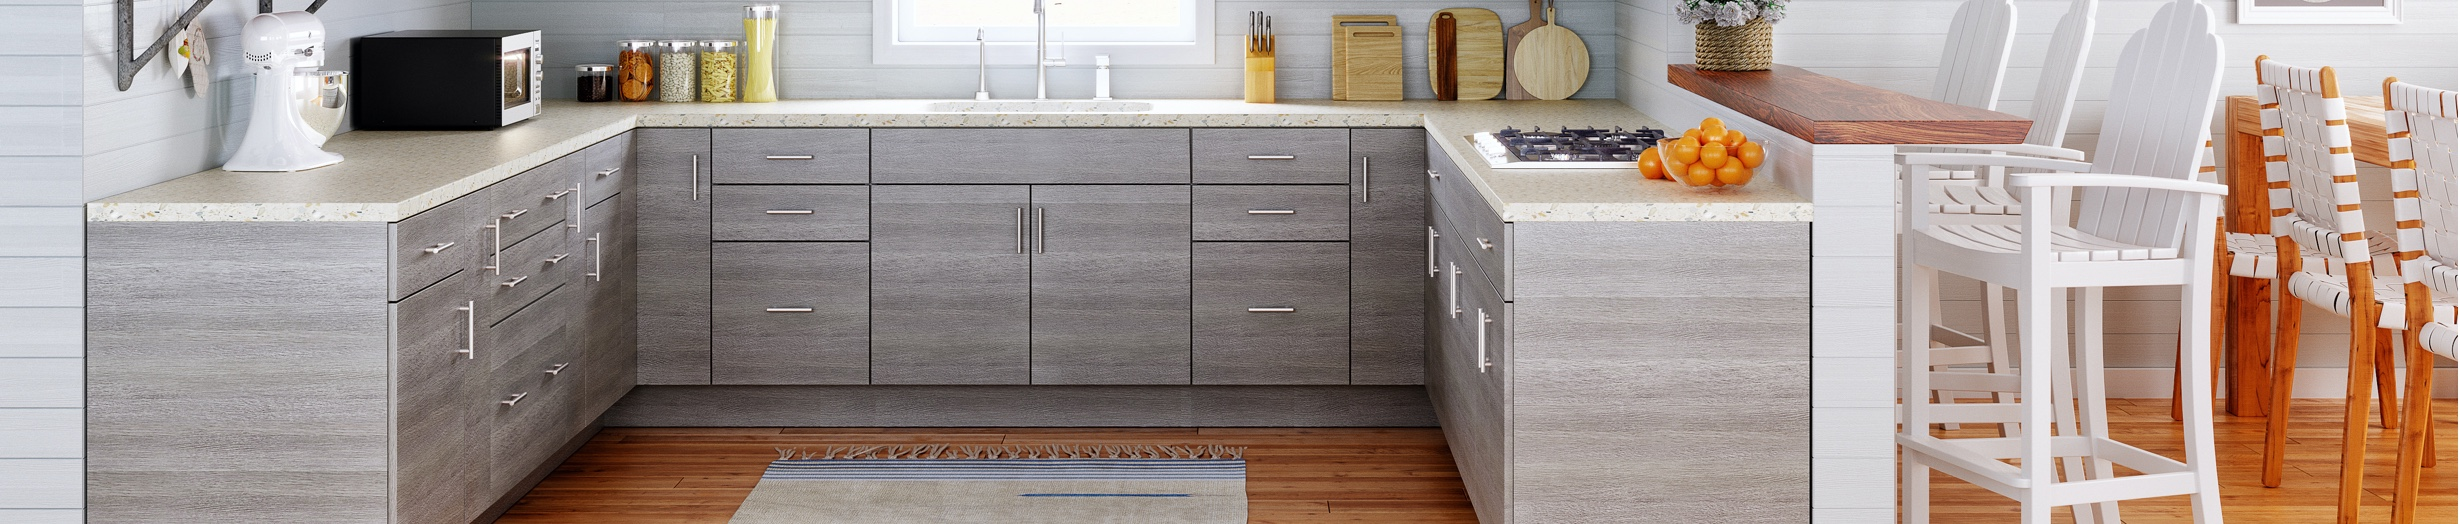 Shop 2020 Stylish Grey Cabinets For Your Kitchen Vevano Home,Bassett Bedroom Furniture 1960s